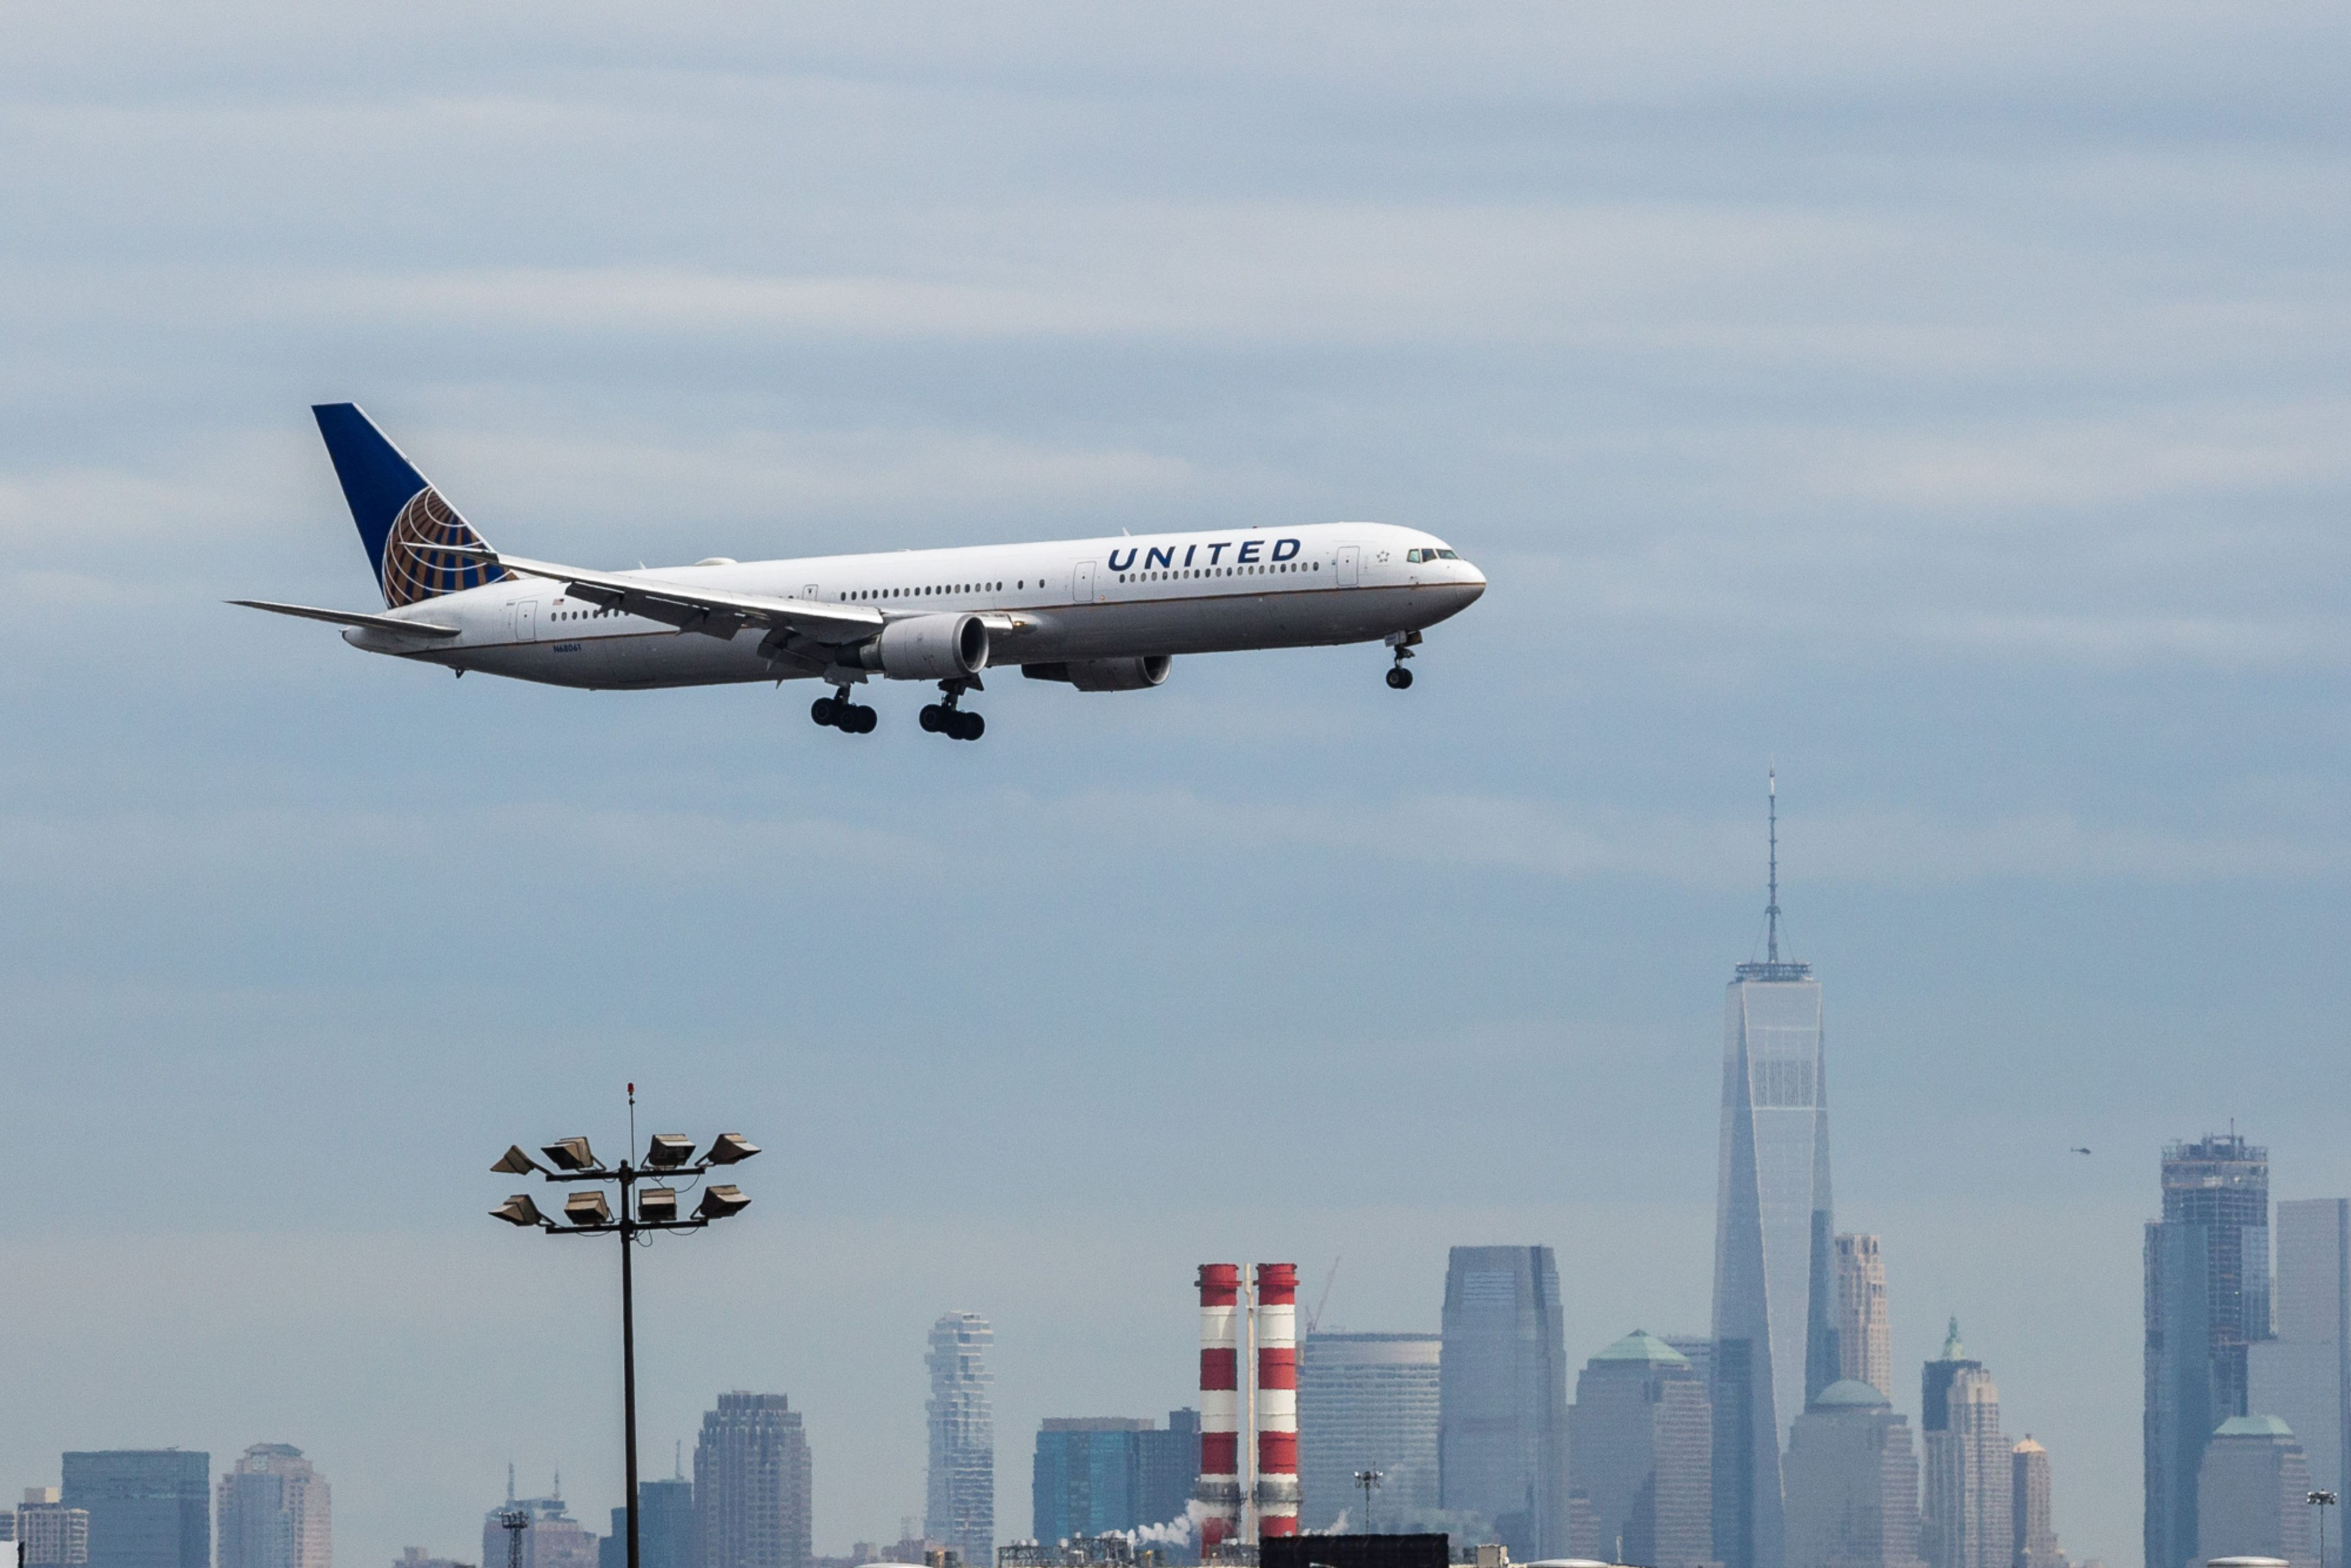 United, Delta see booming travel demand bucking fears of slowdown